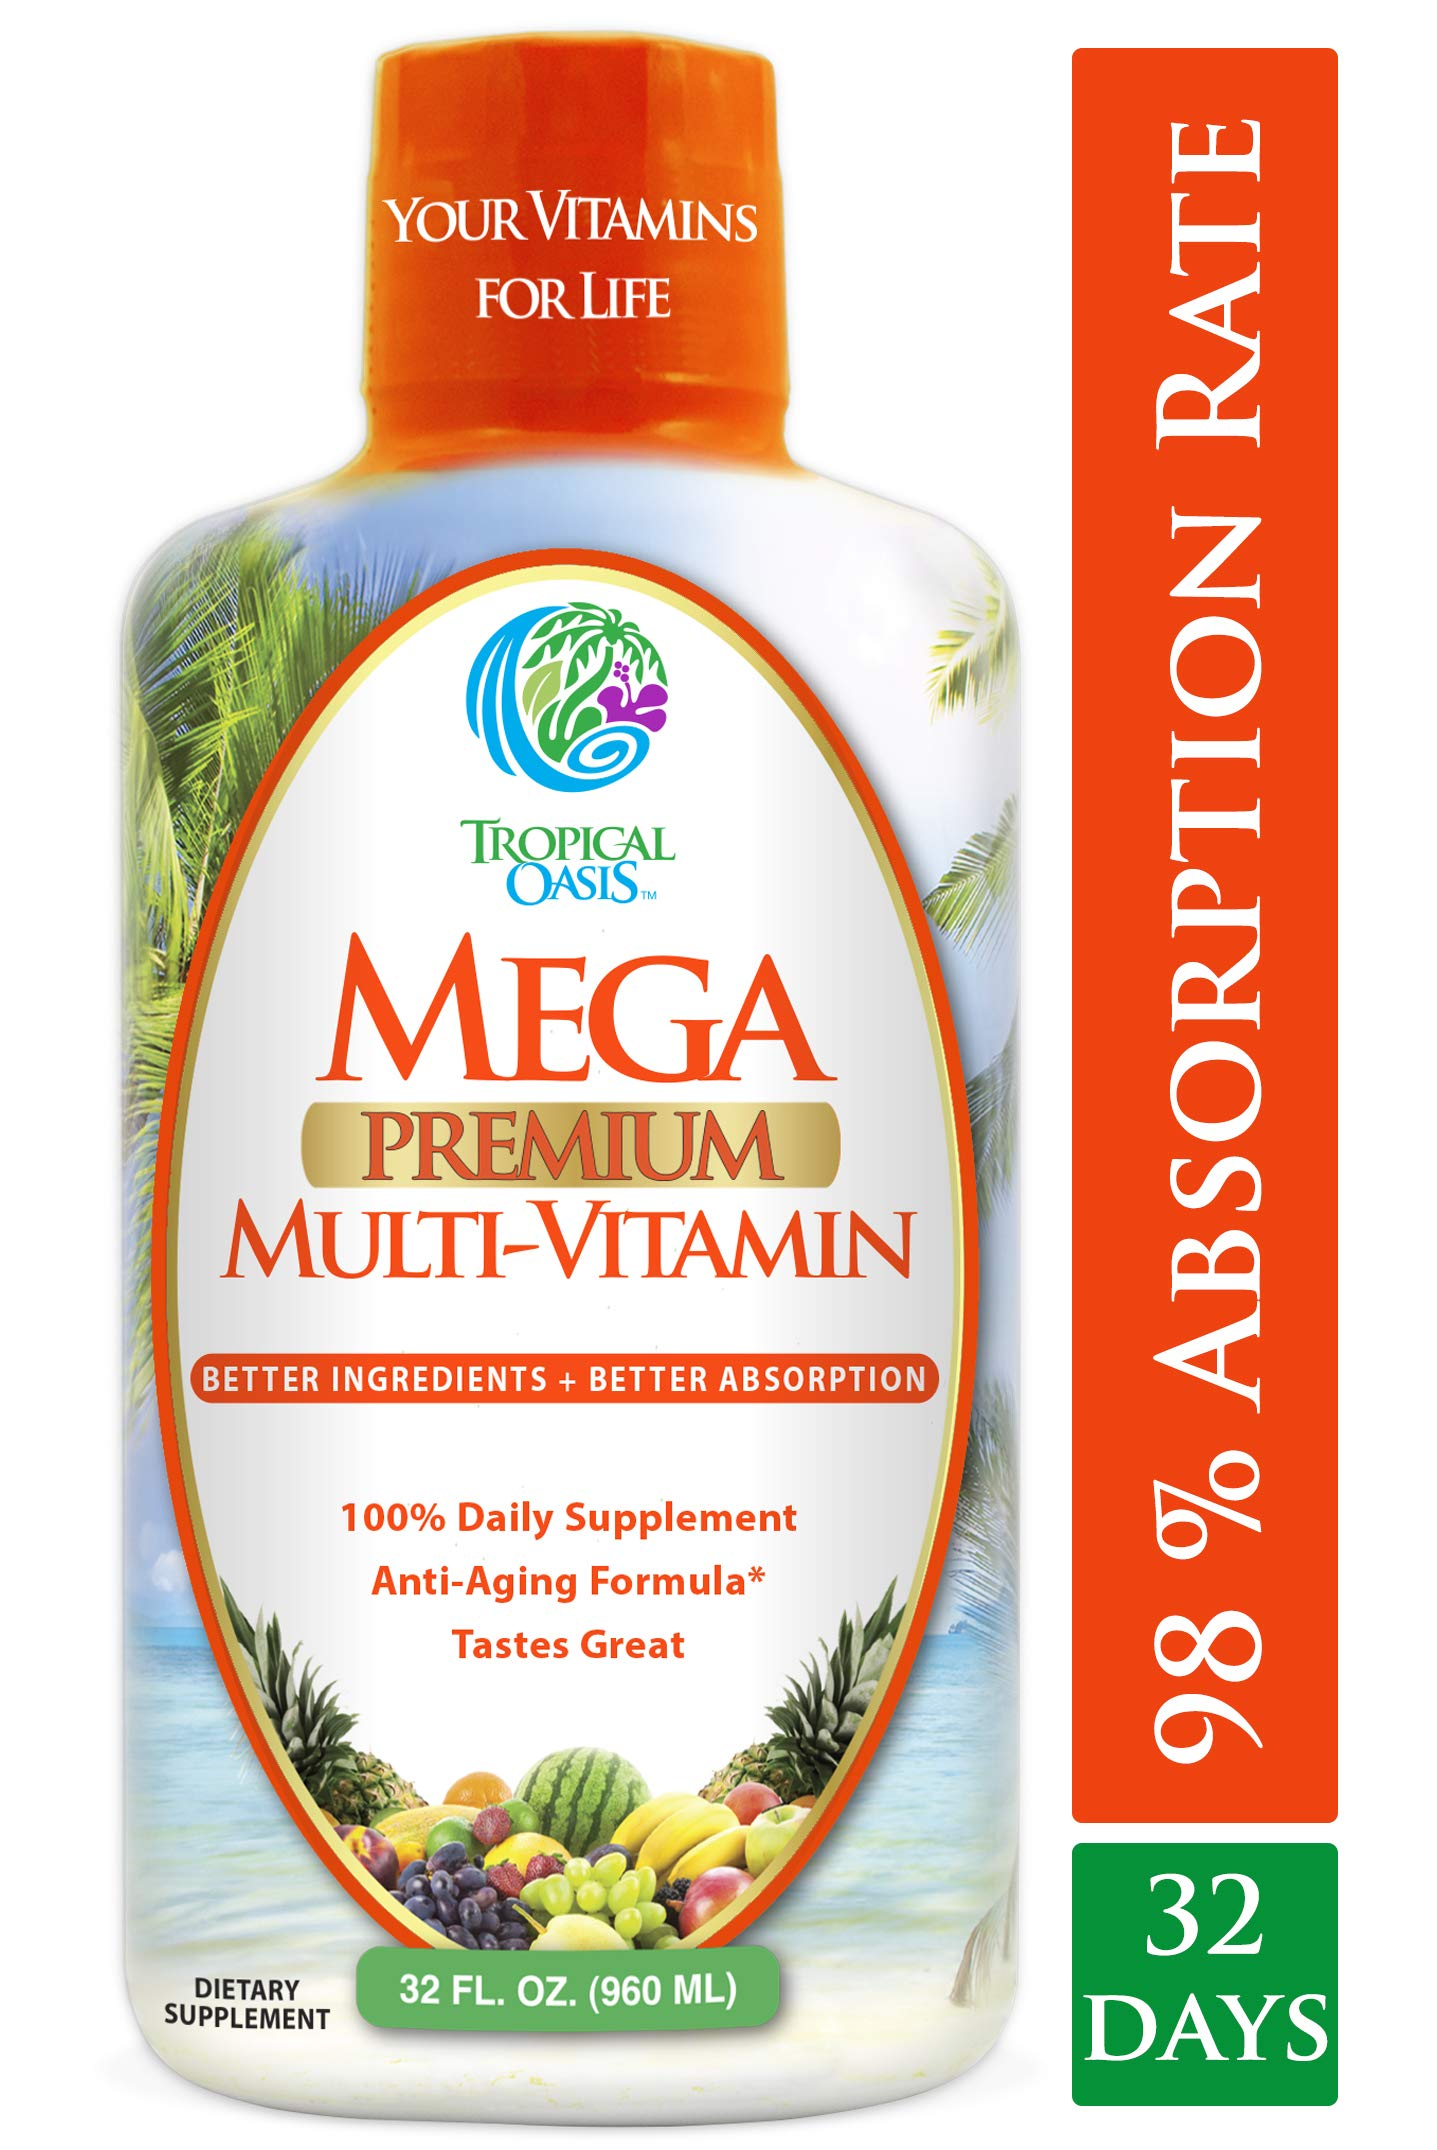 Multivitamin Natural Multi Vitamin Vitamins Absorption